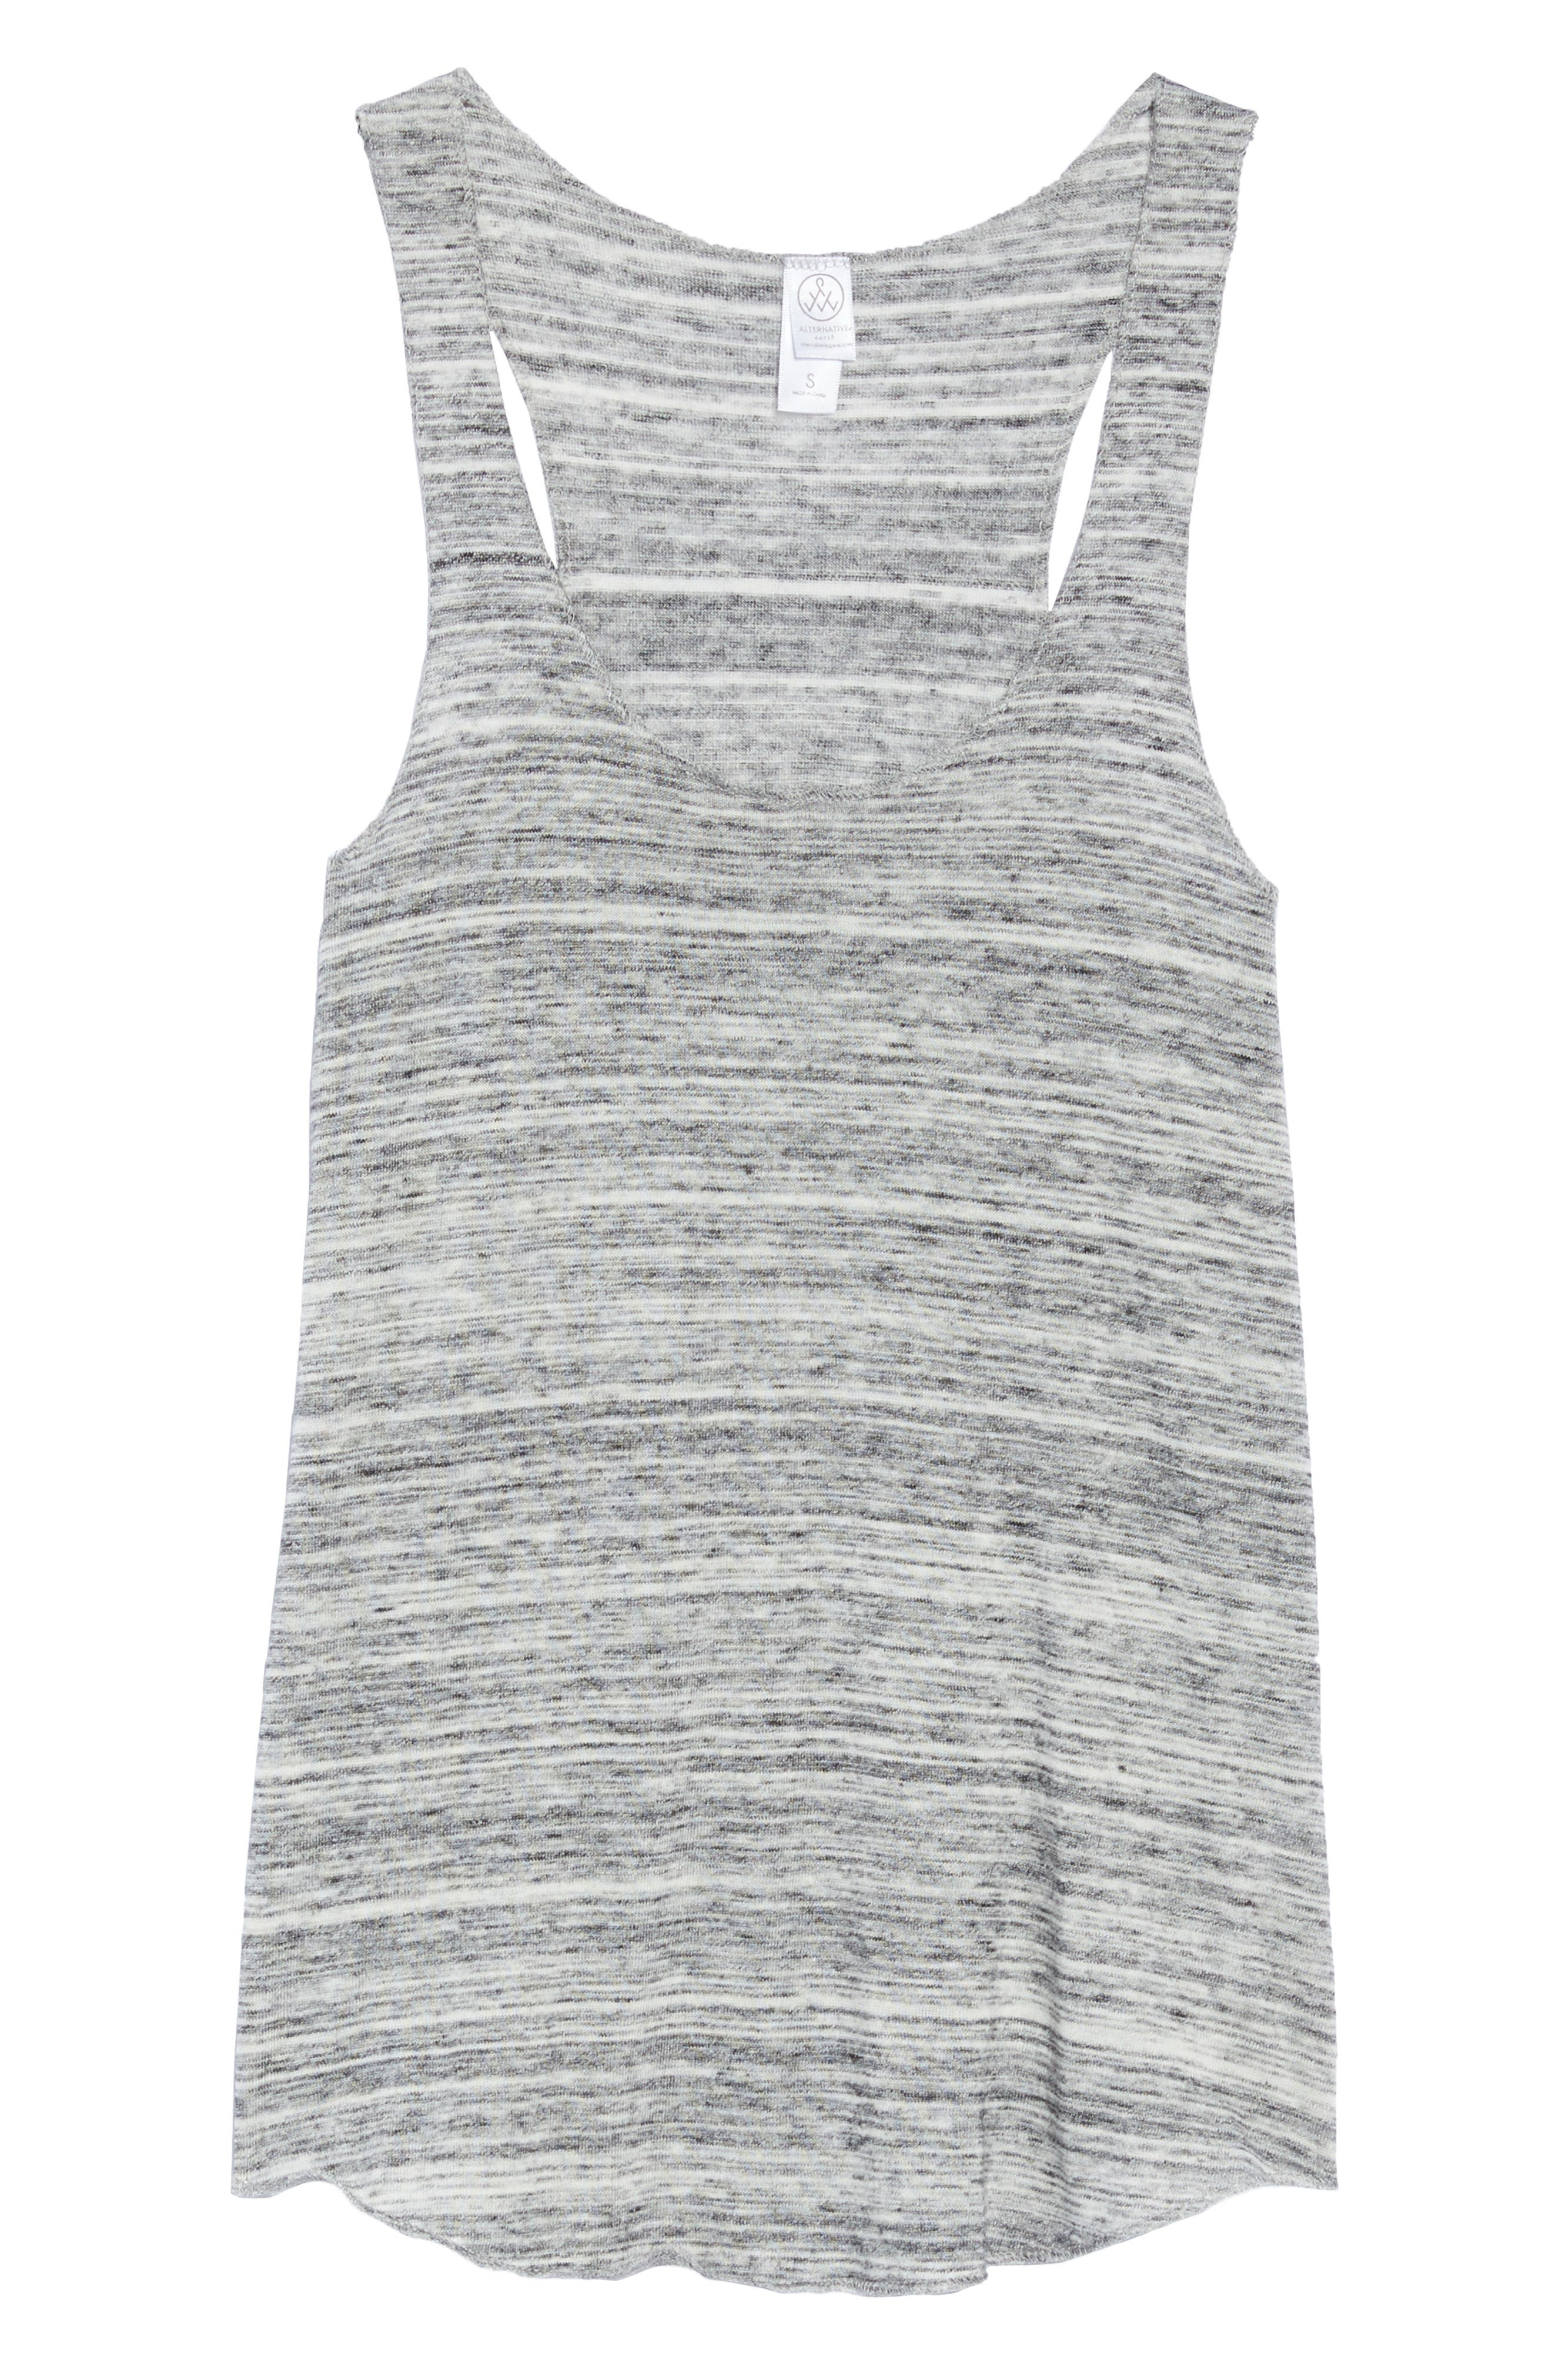 Meegs Racerback Tank,                             Alternate thumbnail 6, color,